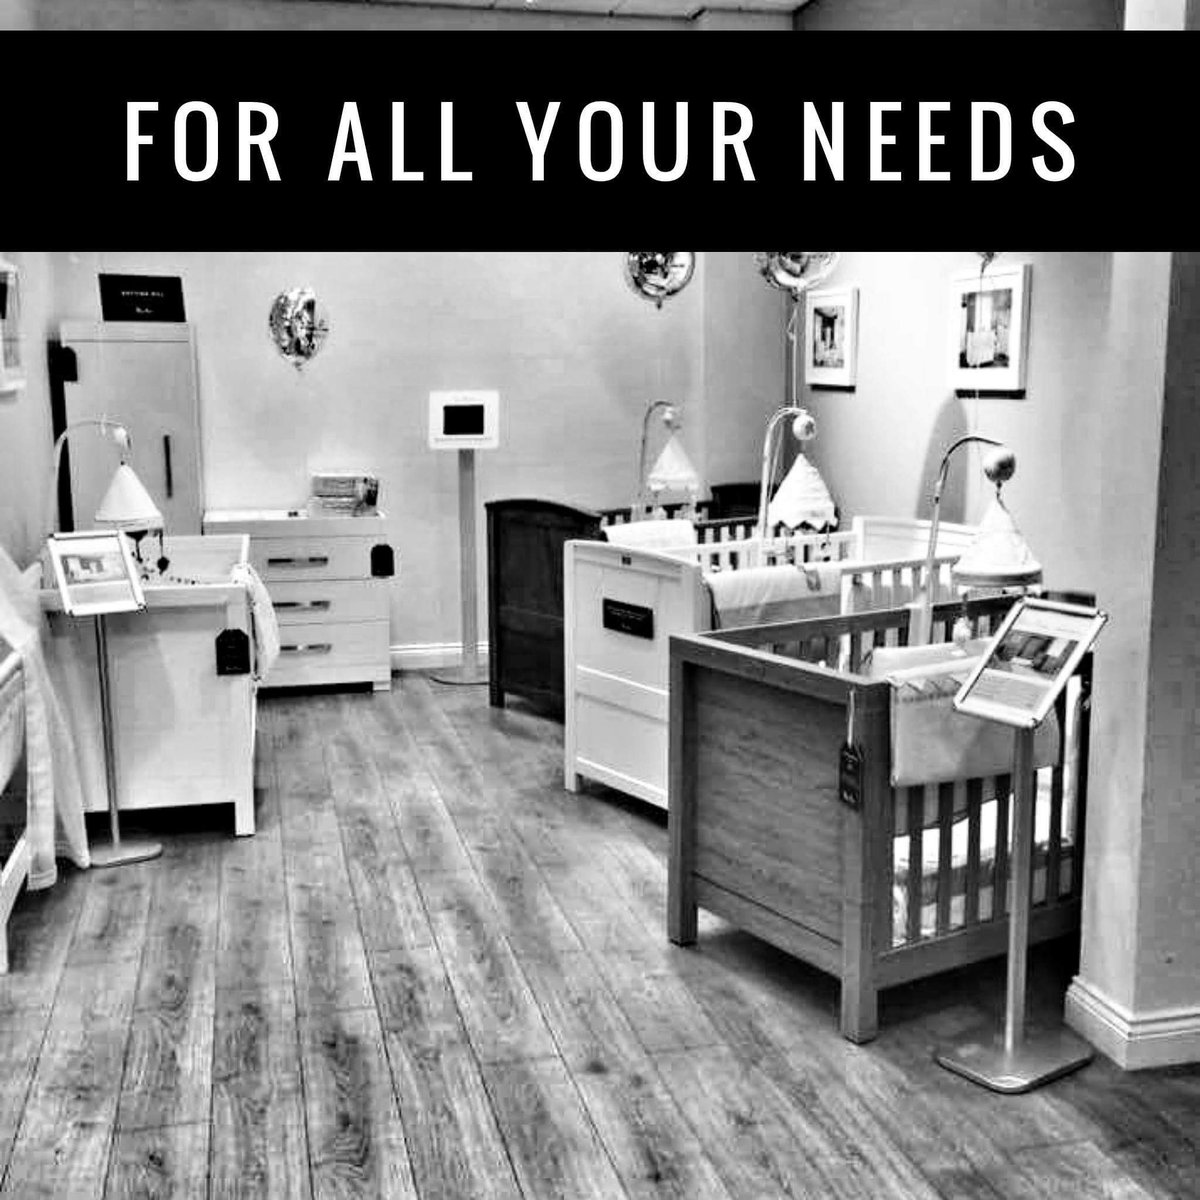 Come to the Leeds Baby &amp; Toddler Show  http://www. boutiqueshows.co.uk  &nbsp;   #leeds #wakefield #Bradford #WestYorkshire #yorkshire #baby #madeinyorkshire<br>http://pic.twitter.com/AnBV1AQM67